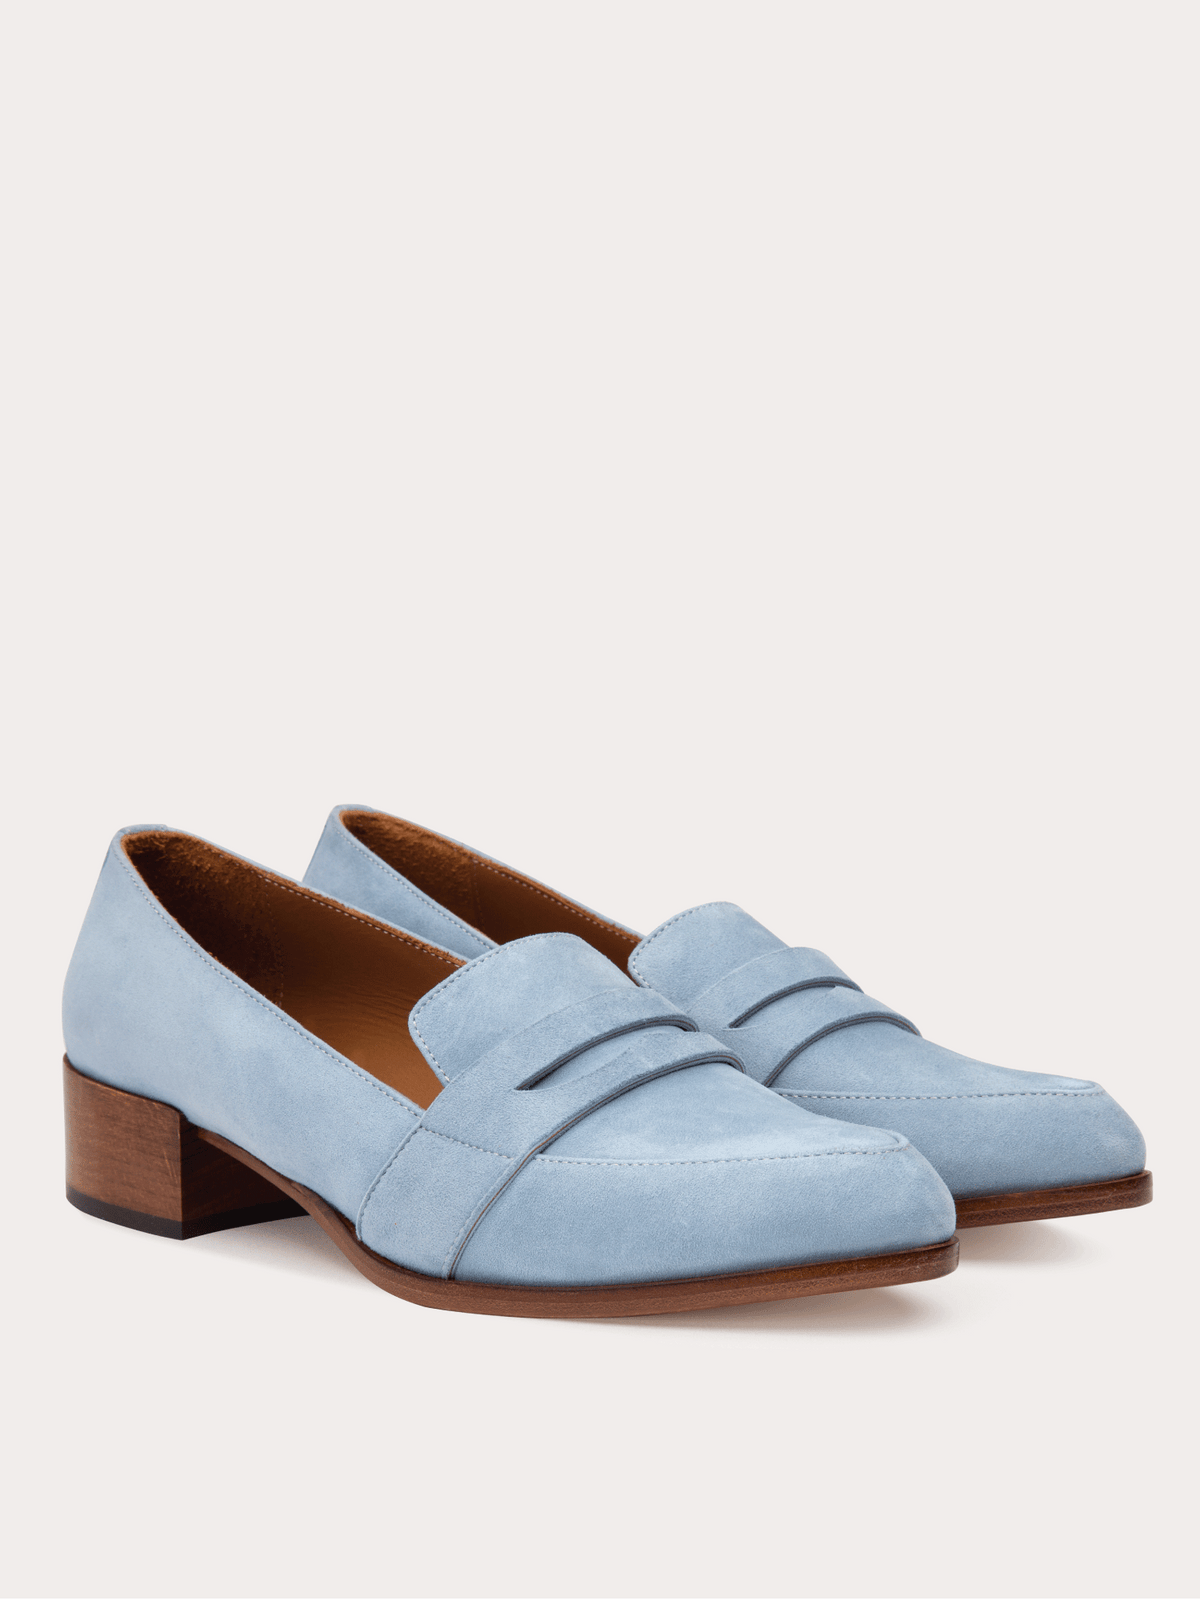 Thelma Loafer in Powder